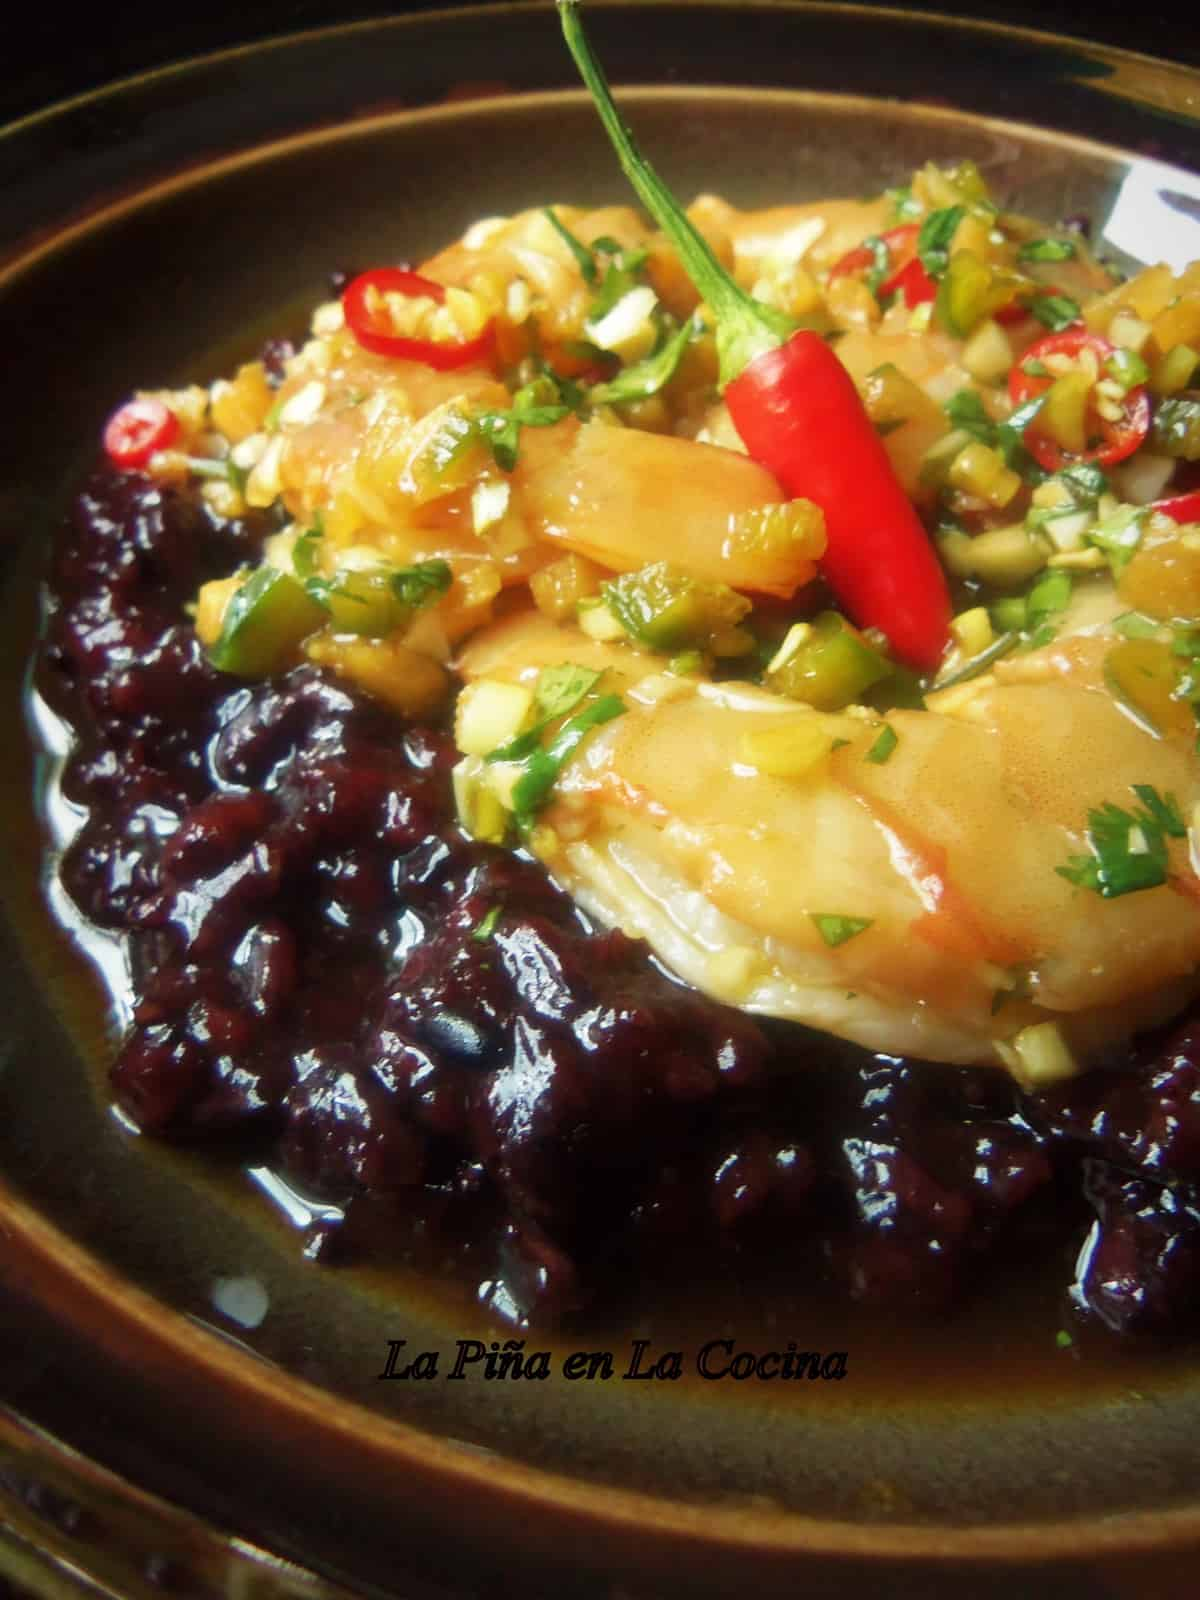 Spicy Asian Shrimp with Black Thai Rice